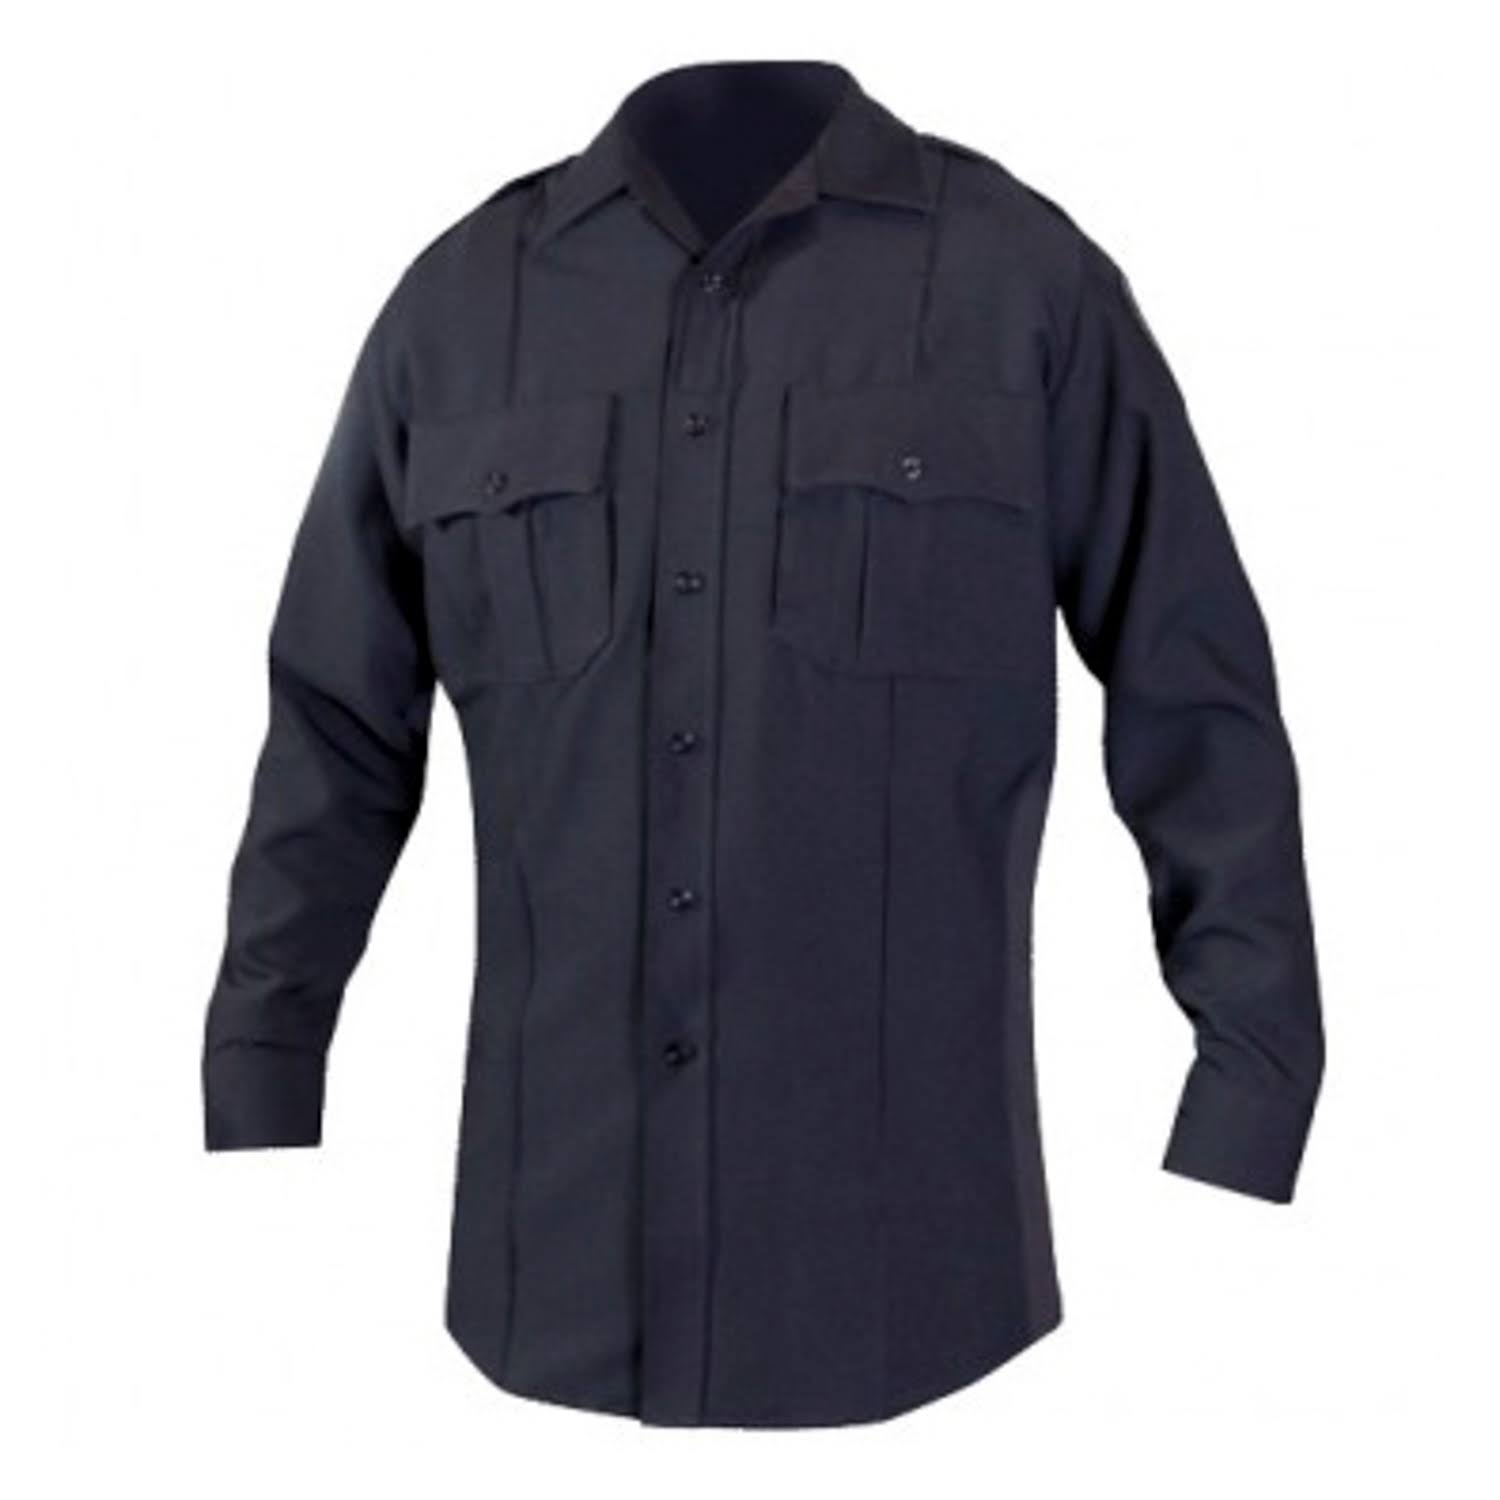 Blauer Super Shirt - Dark Navy - 8670 4 185 34/35